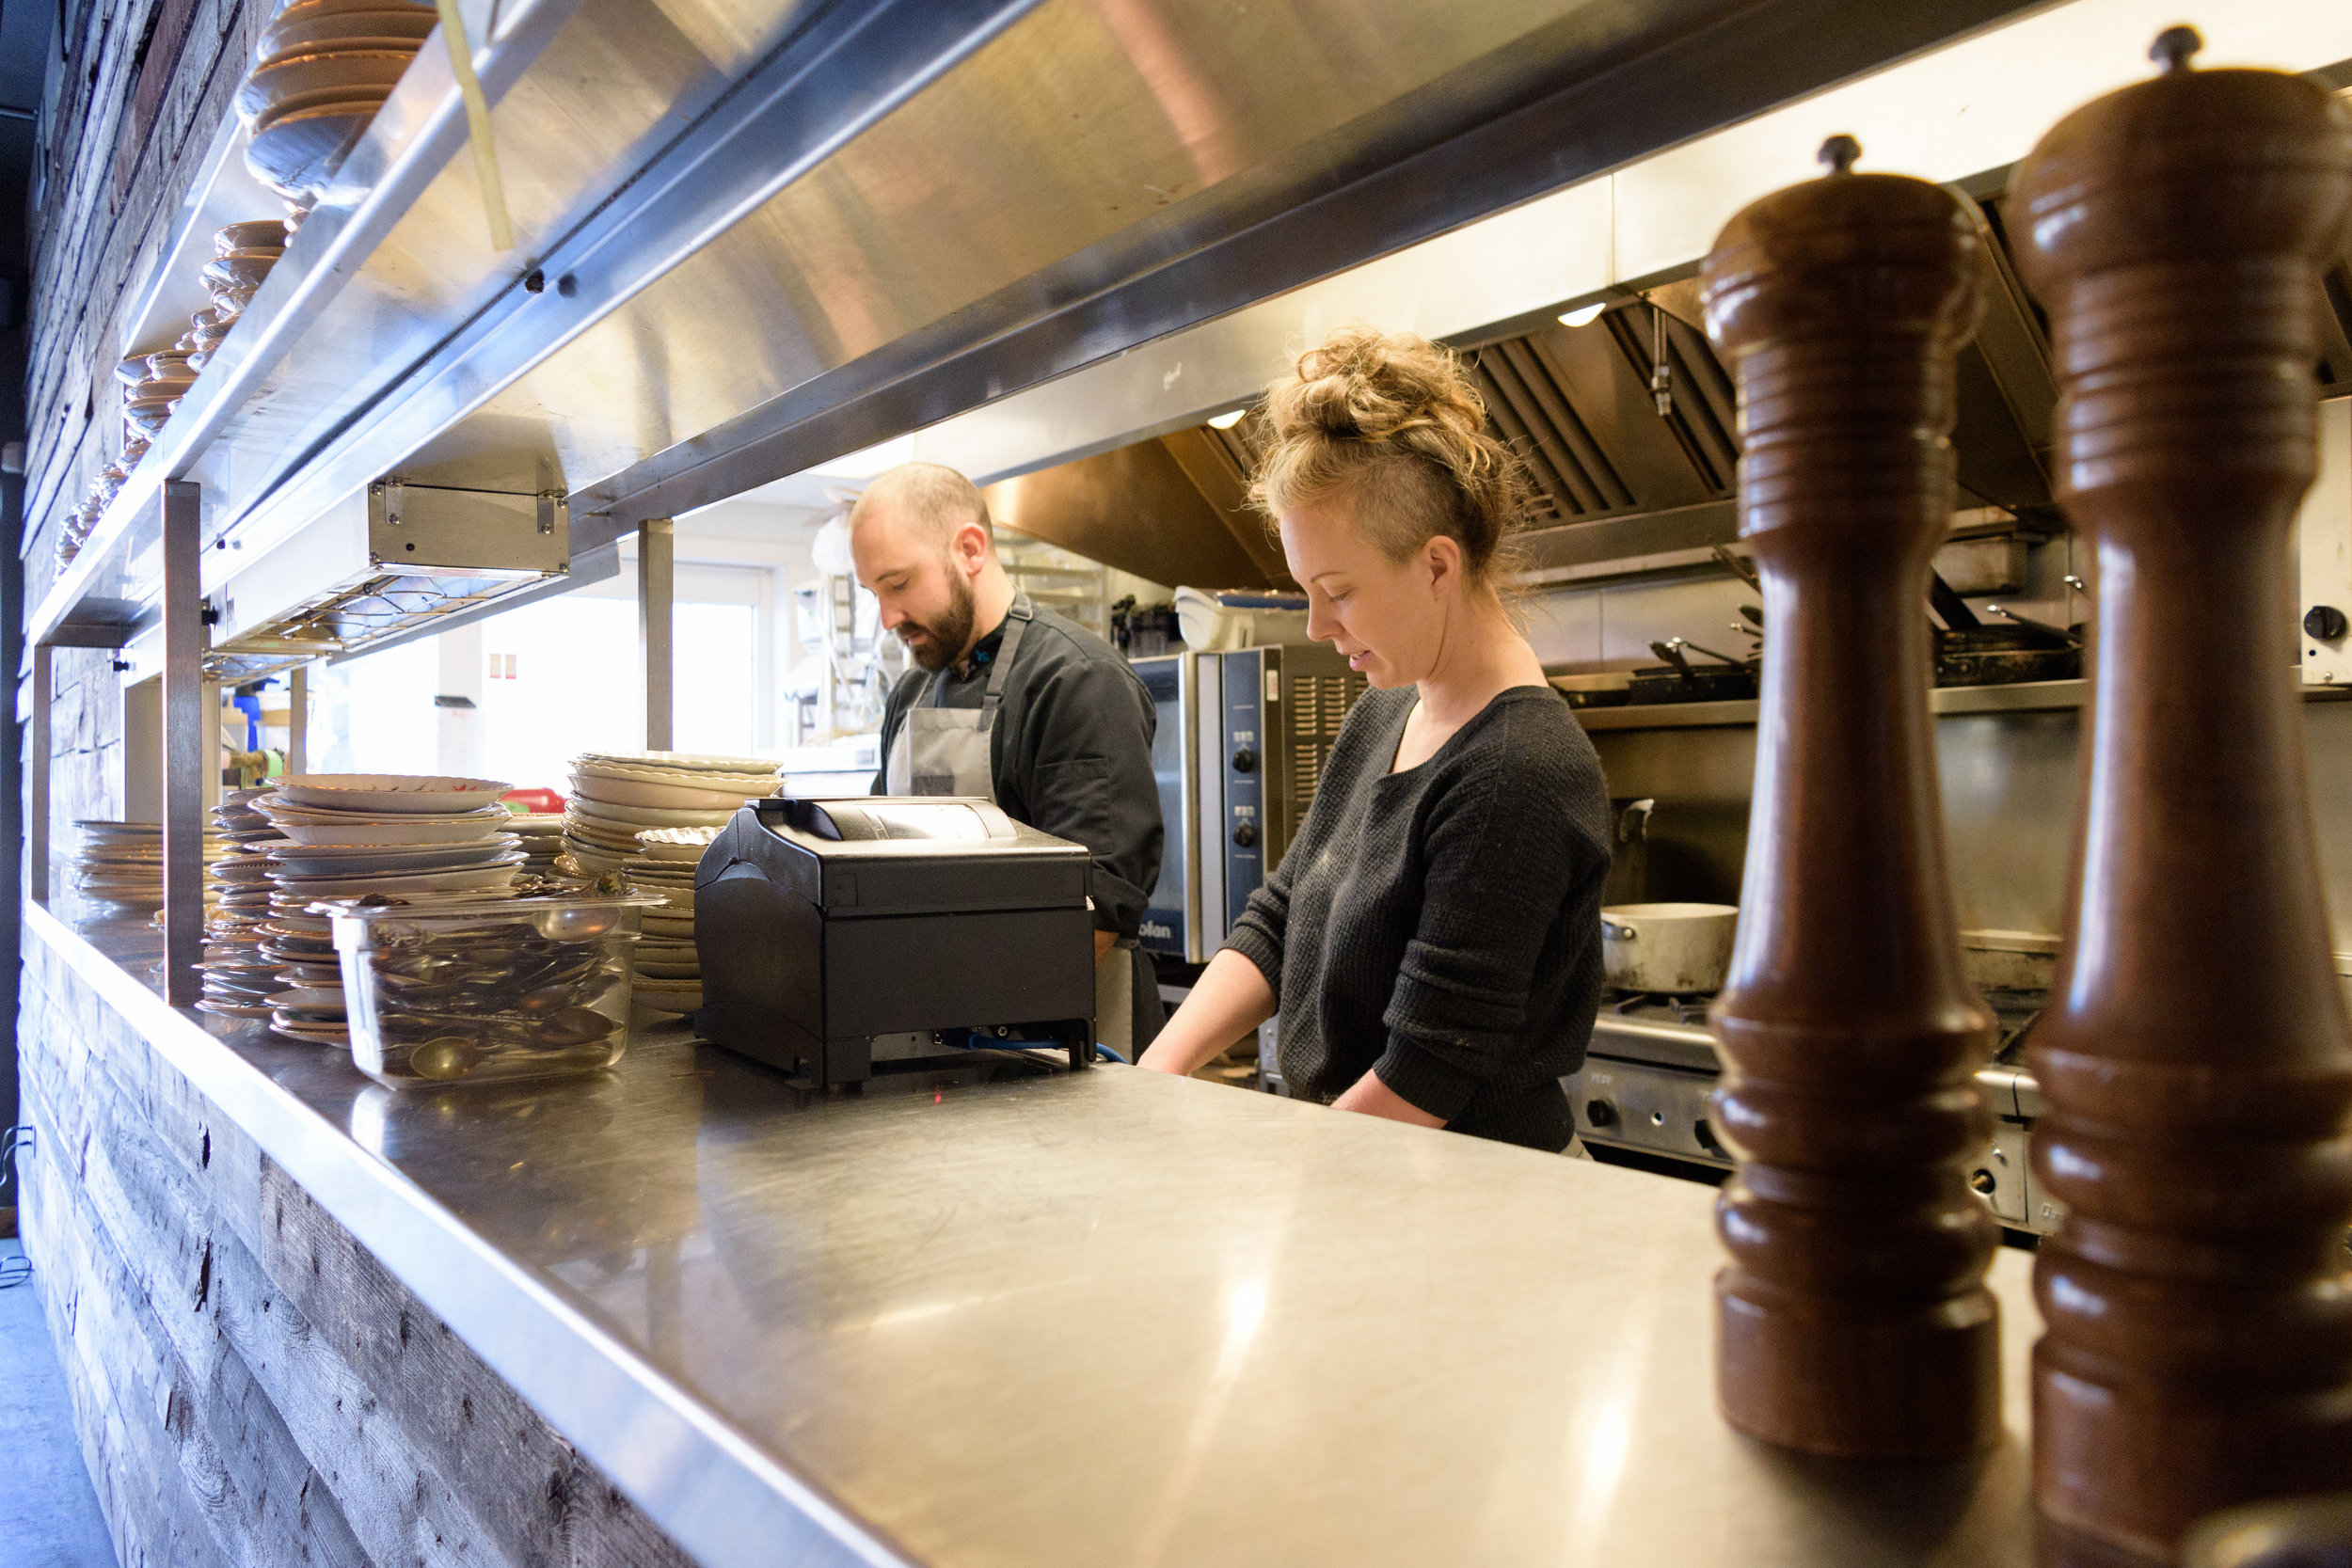 Chef Steve Brochu and Alexis at Chartier. Photo by Ebony Bird Photography.